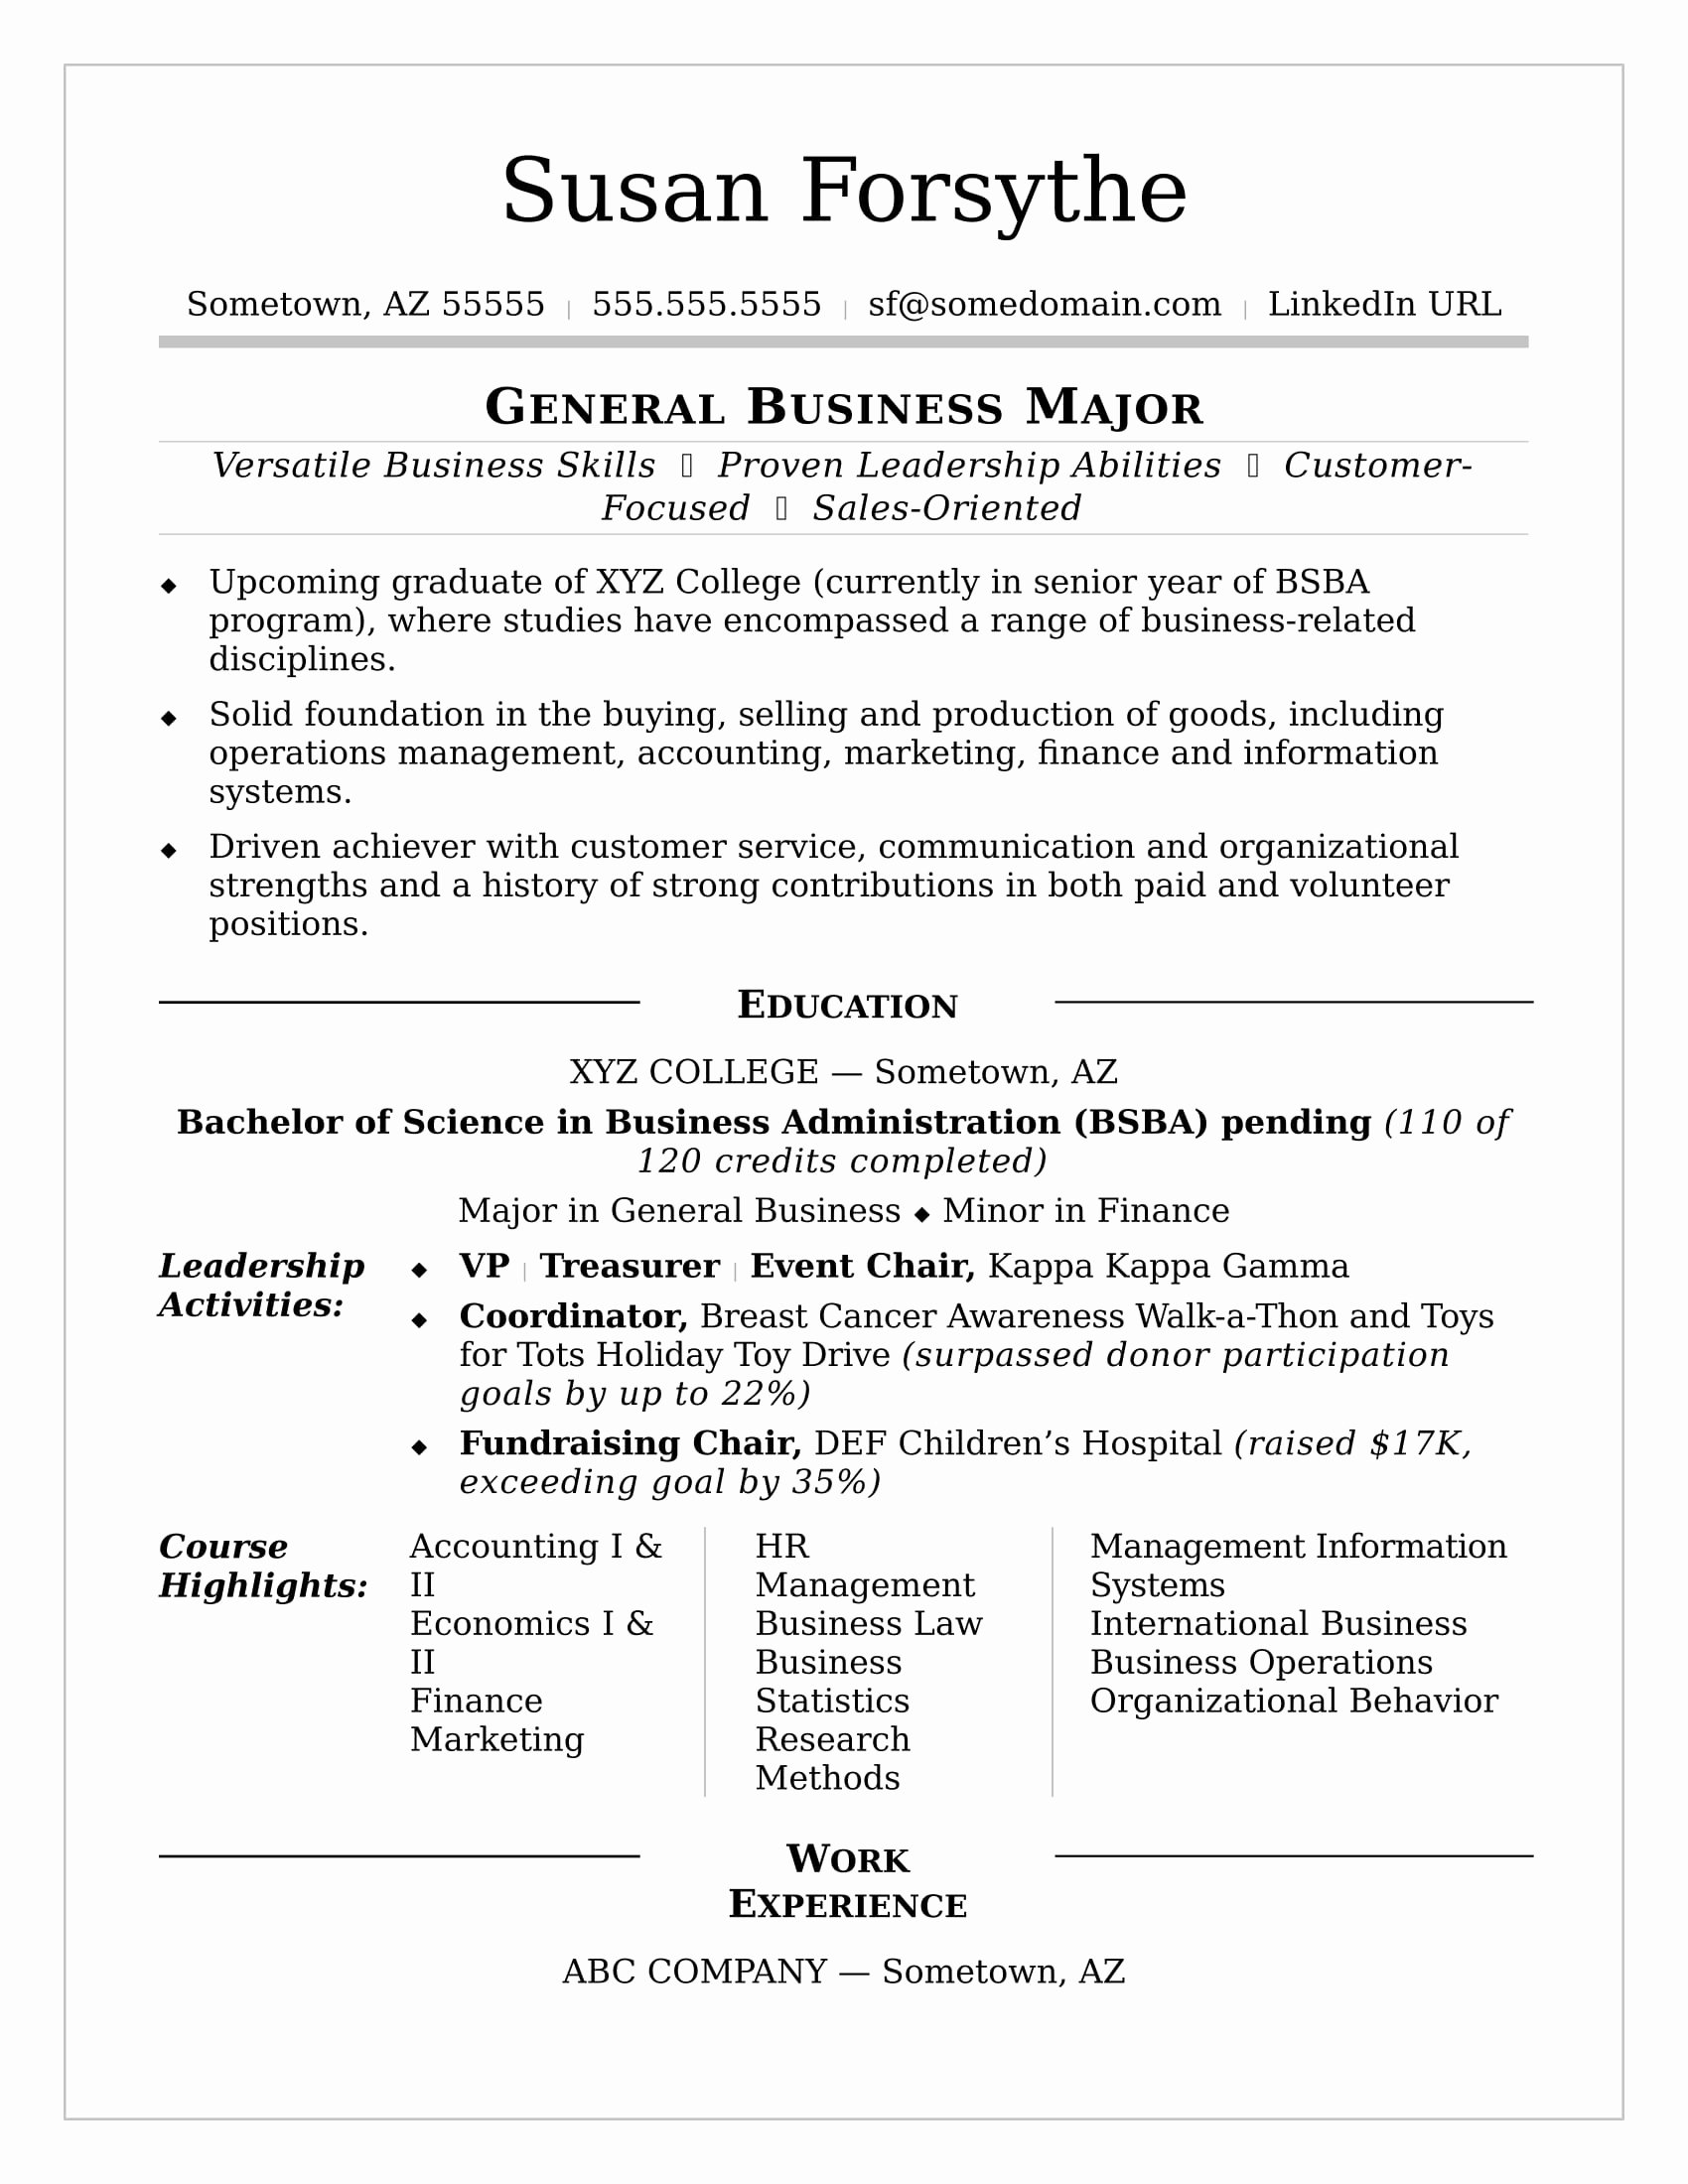 Cv Samples for Students Fresh College Resume Sample